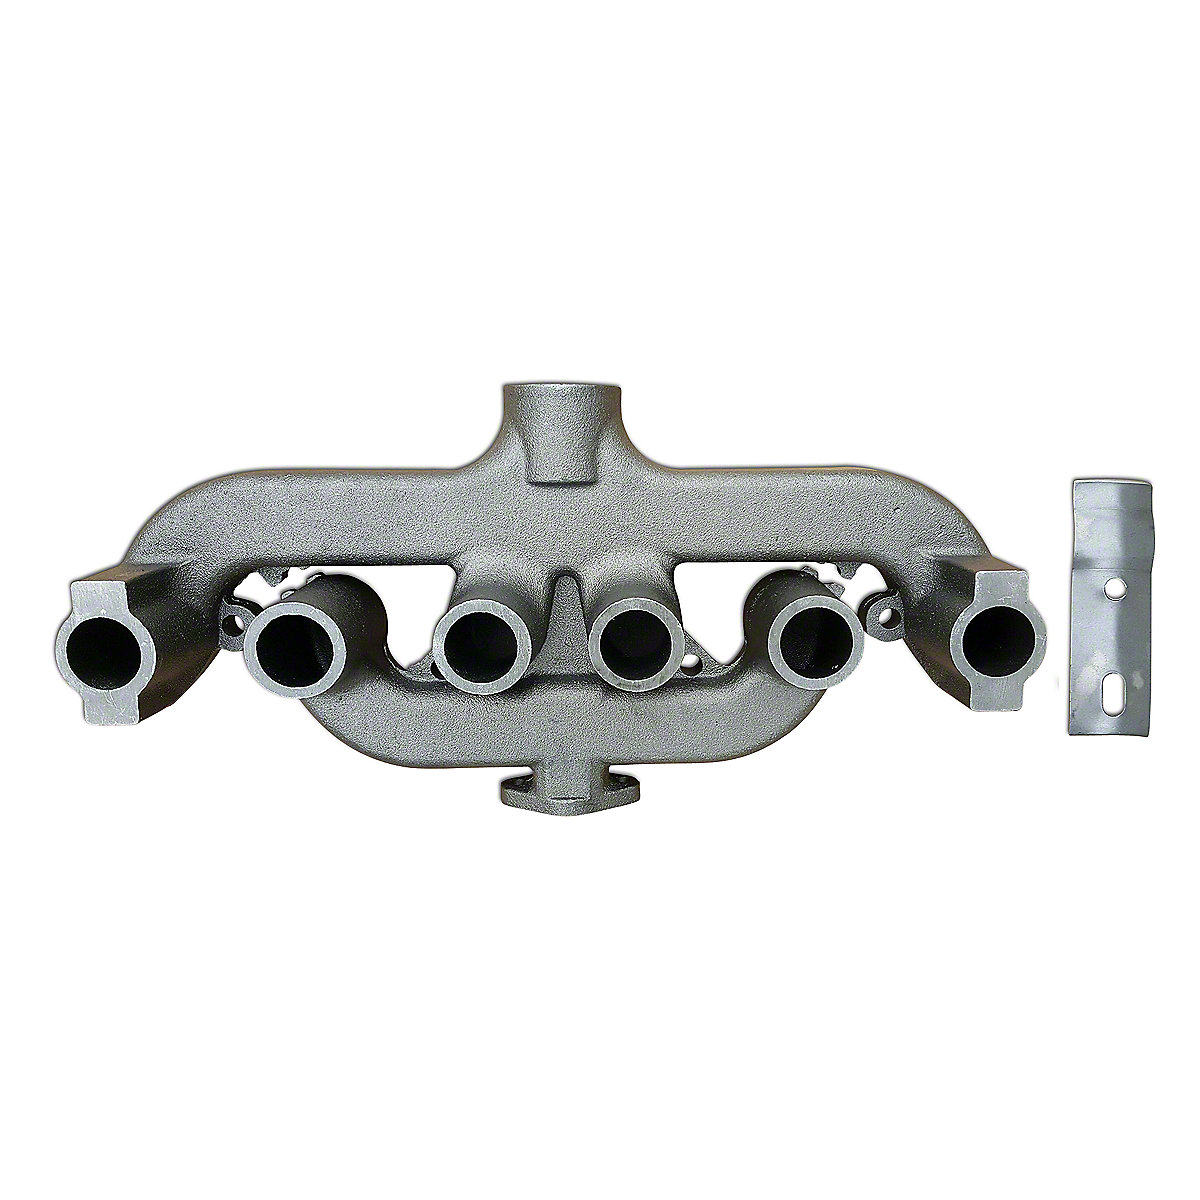 ACS004Intake & Exhaust Manifold -- Fits Allis WD45, WD, WC & Early D17 Gas